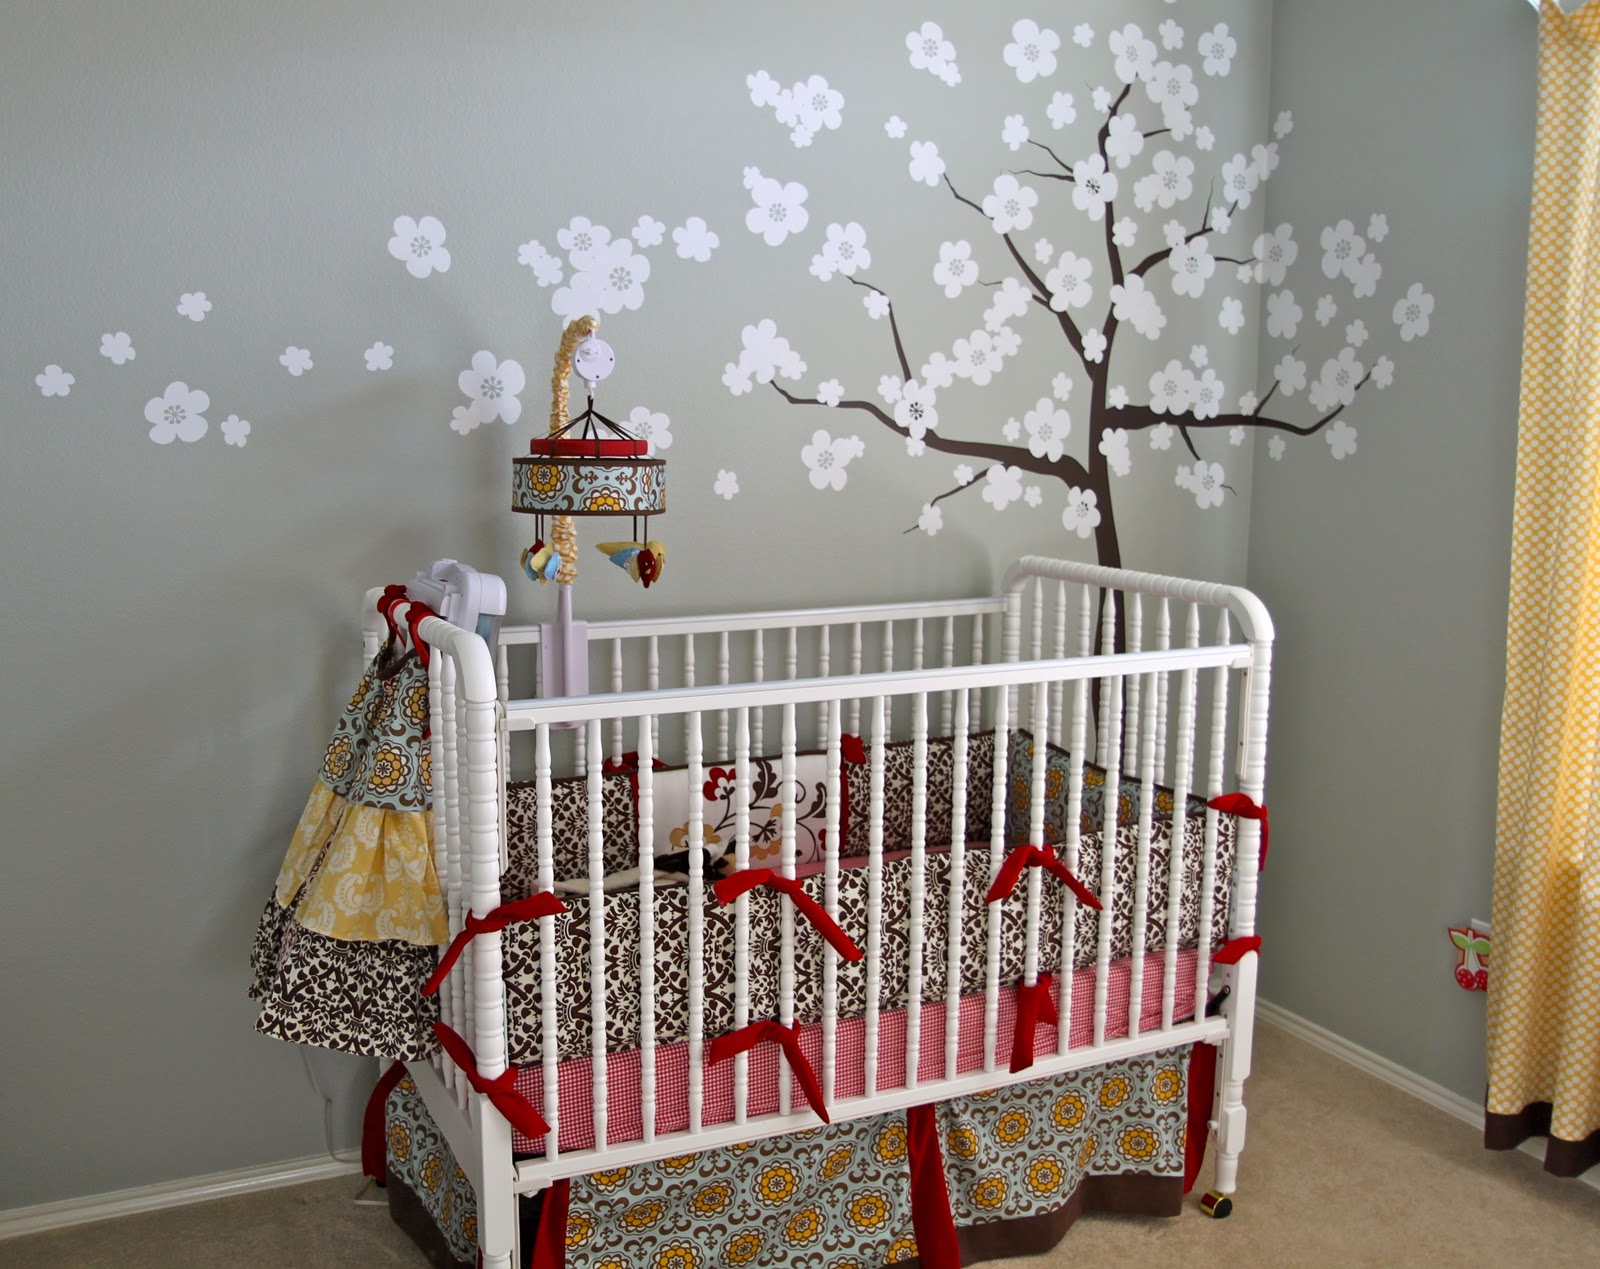 Baby Nursery It 39 S Quirky And So Cute Design Dazzle